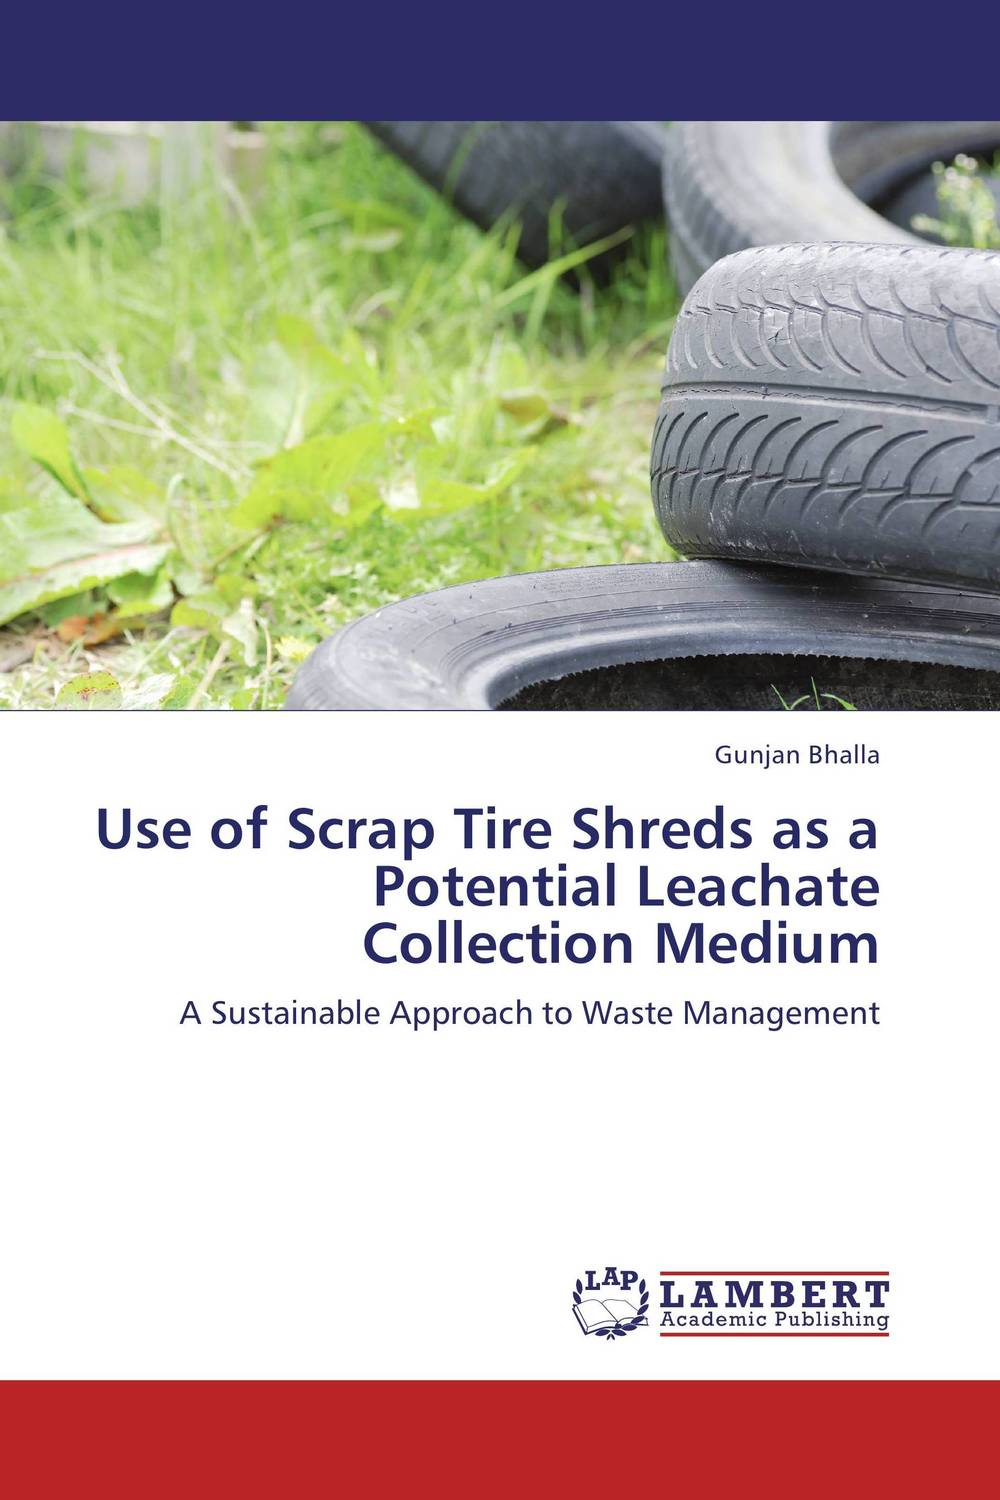 Use of Scrap Tire Shreds as a Potential Leachate Collection Medium